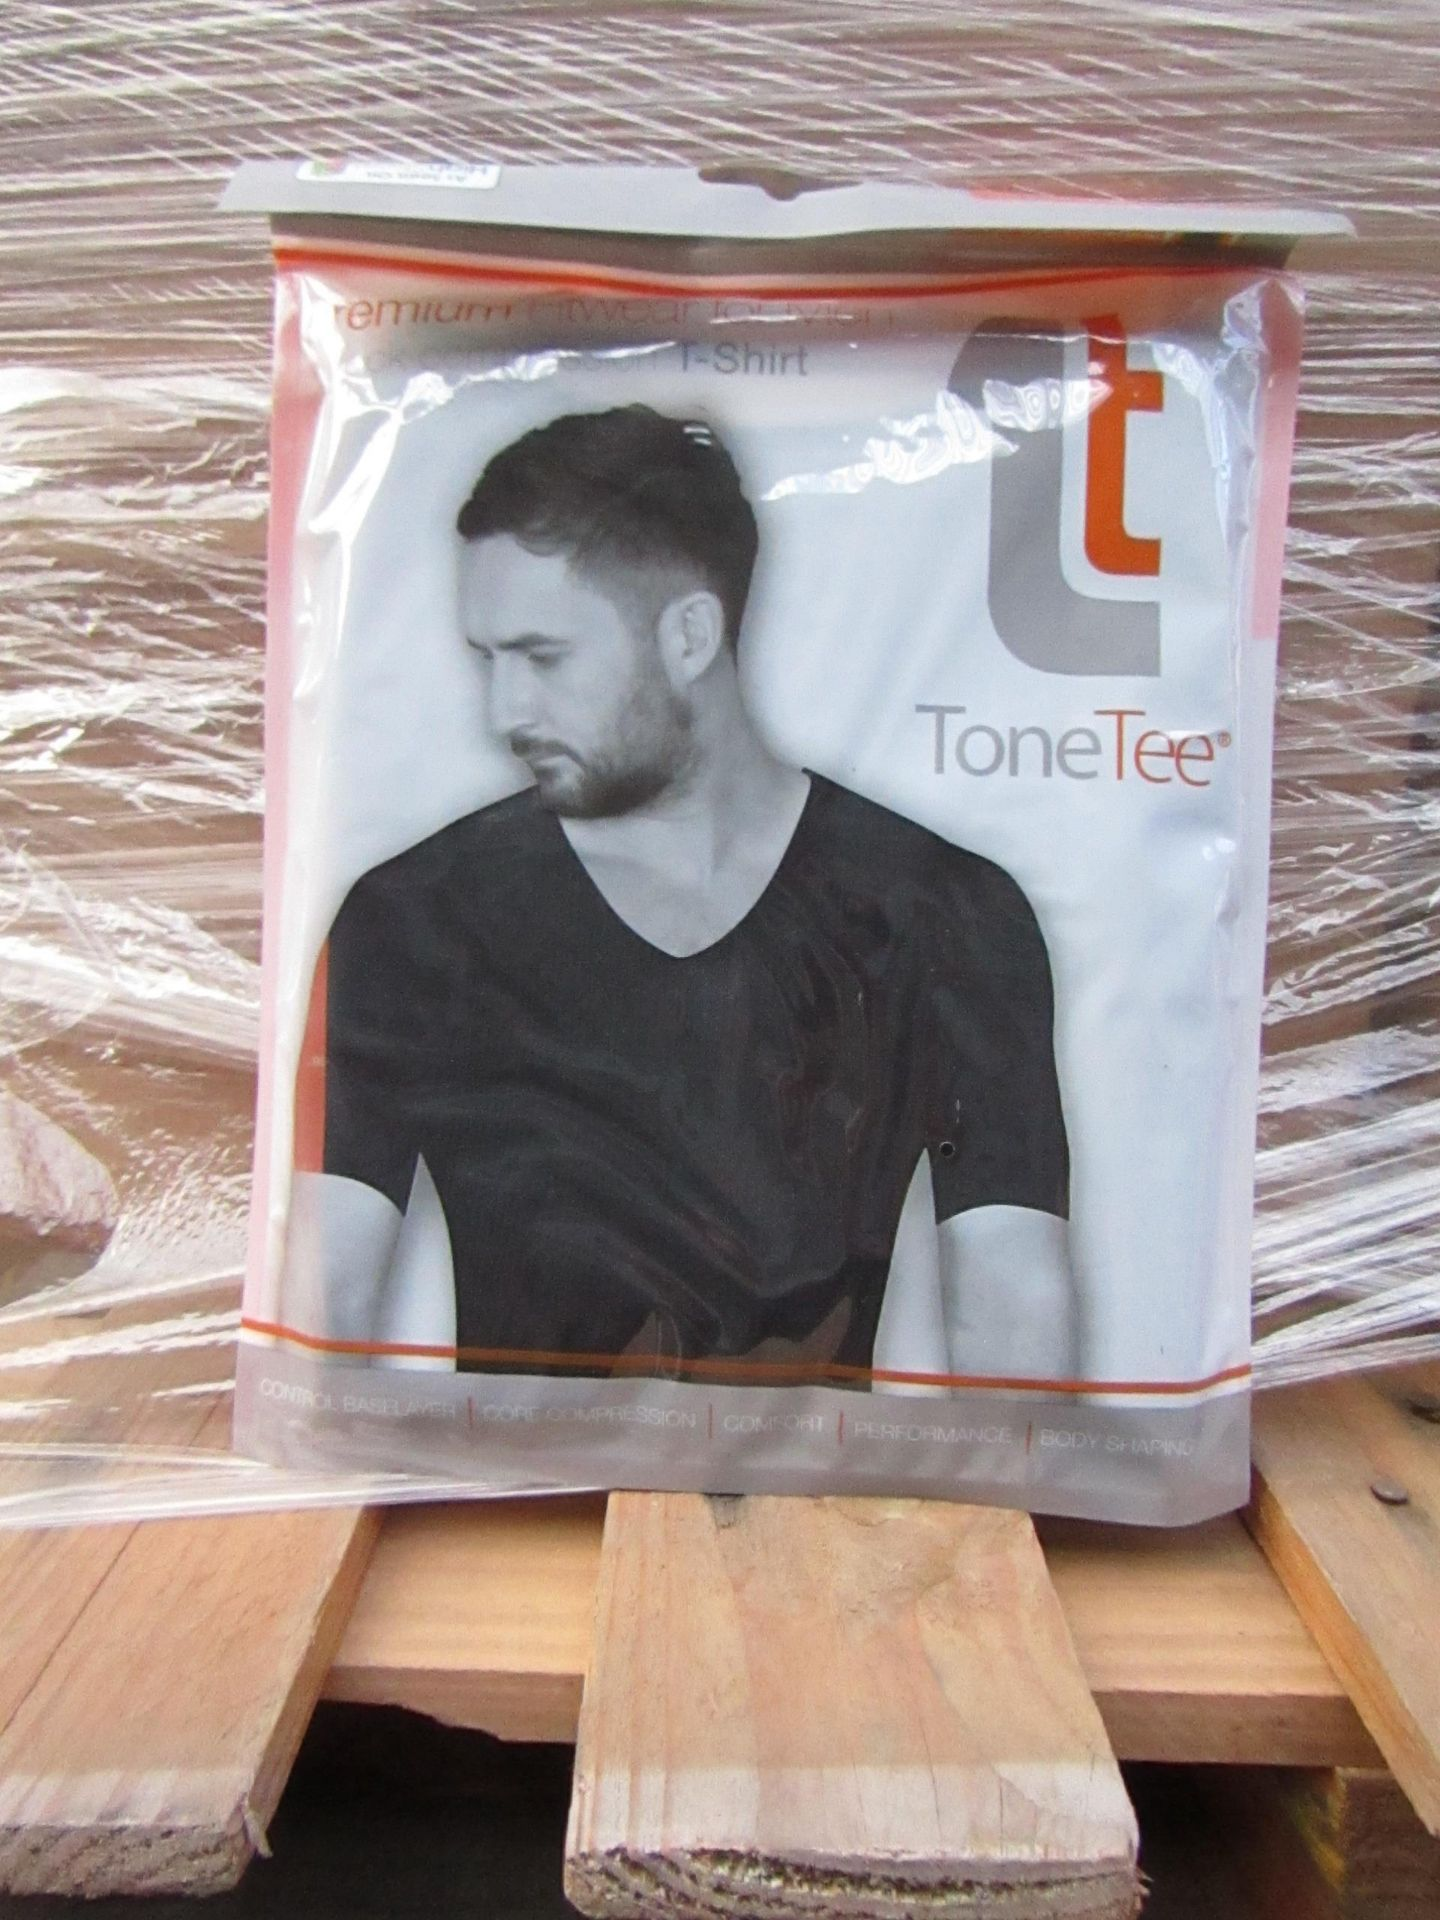 | 12x | BOXES EACH CONTAINING APPROX 48 TONE TEES T SHIRTS/ VESTS (APPROX 576 IN TOTAL), ALL NEW,